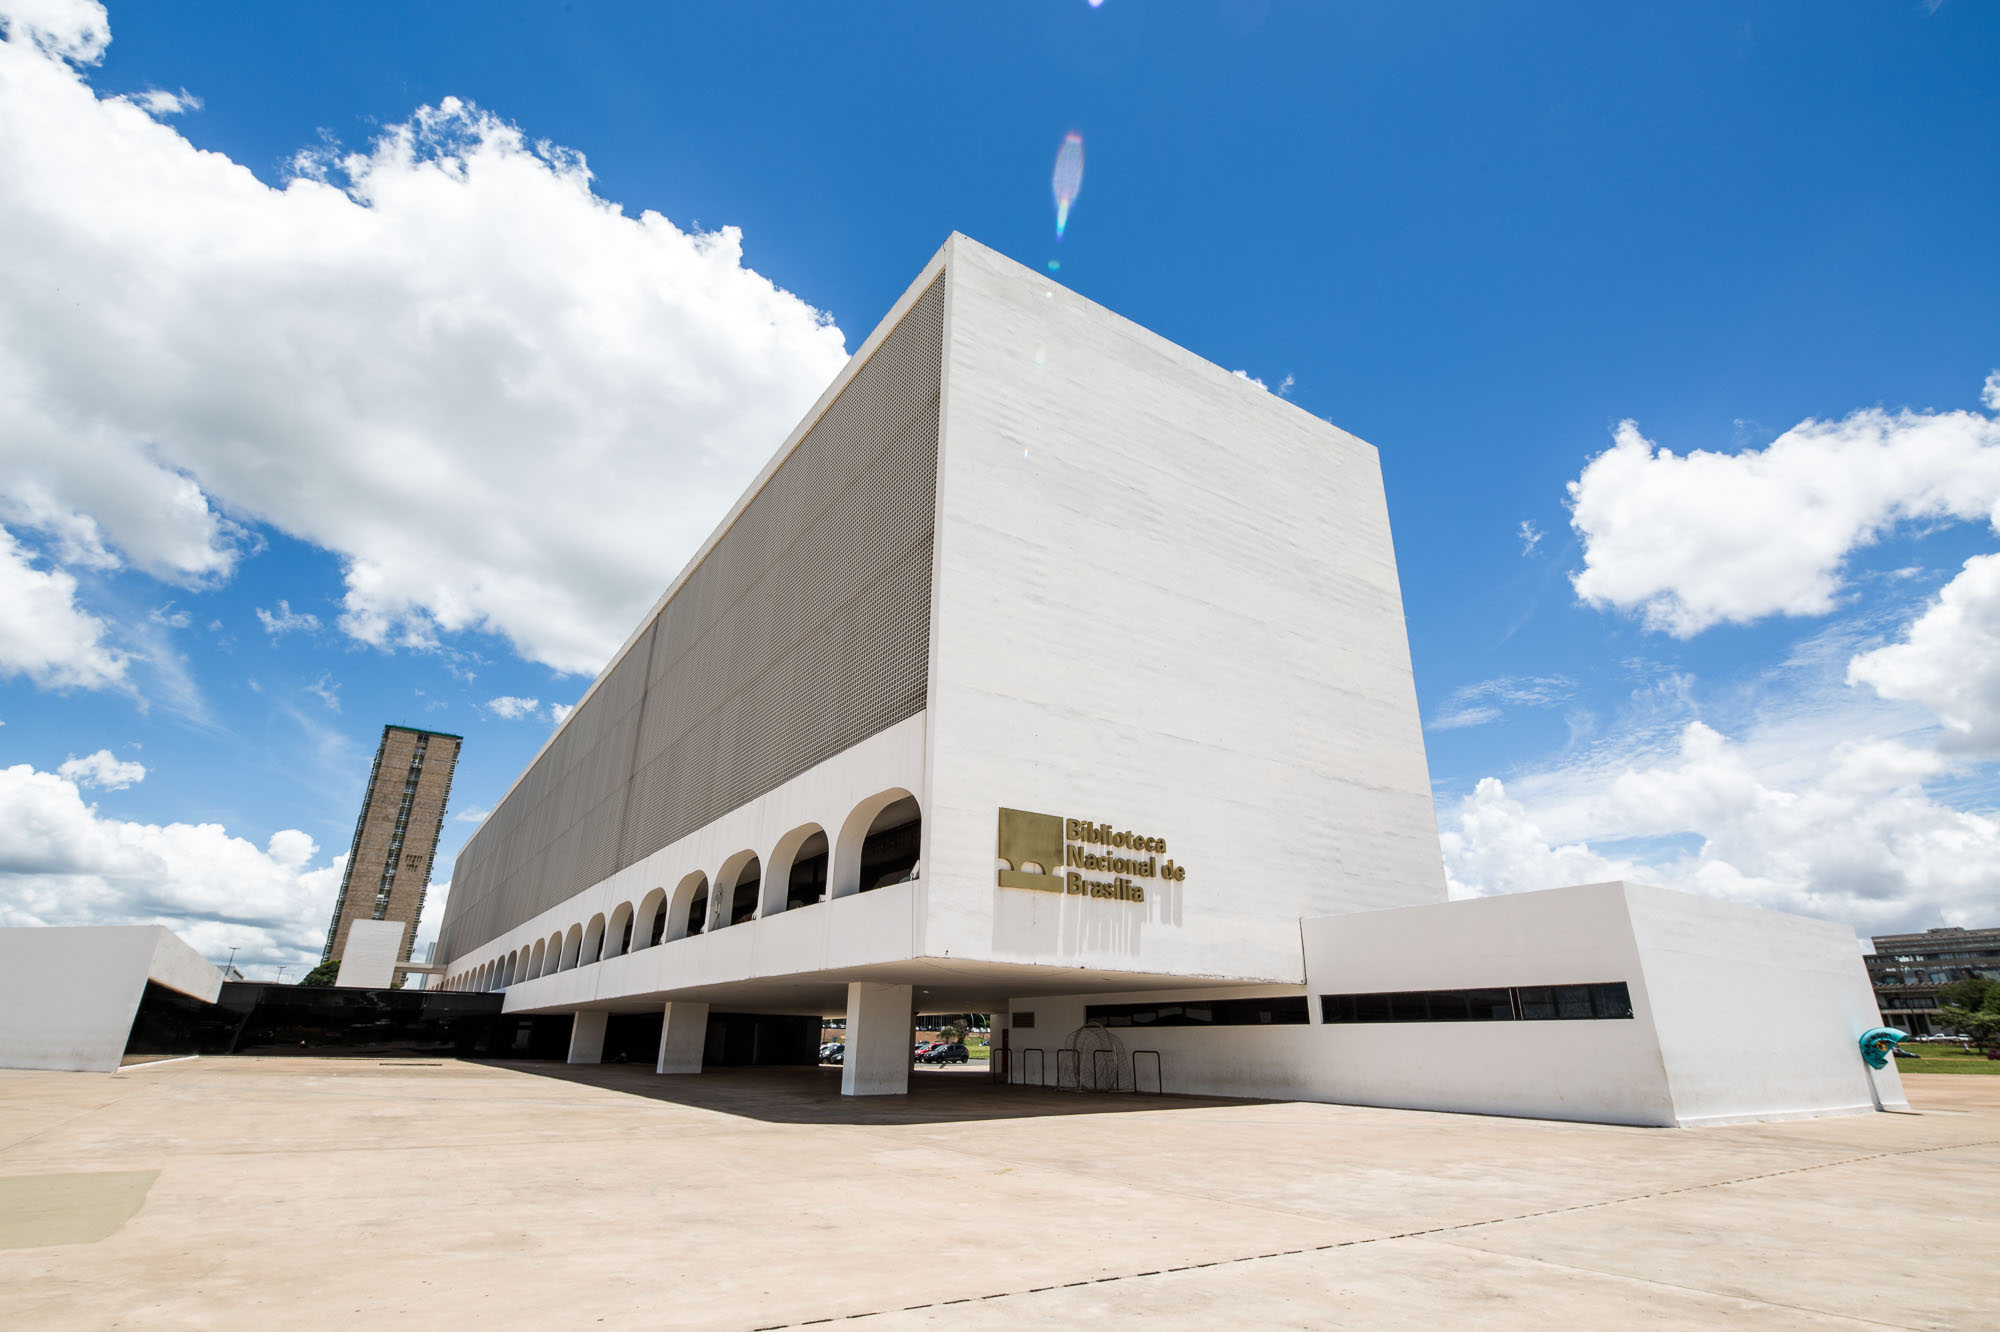 Building of the National Library of Brazil